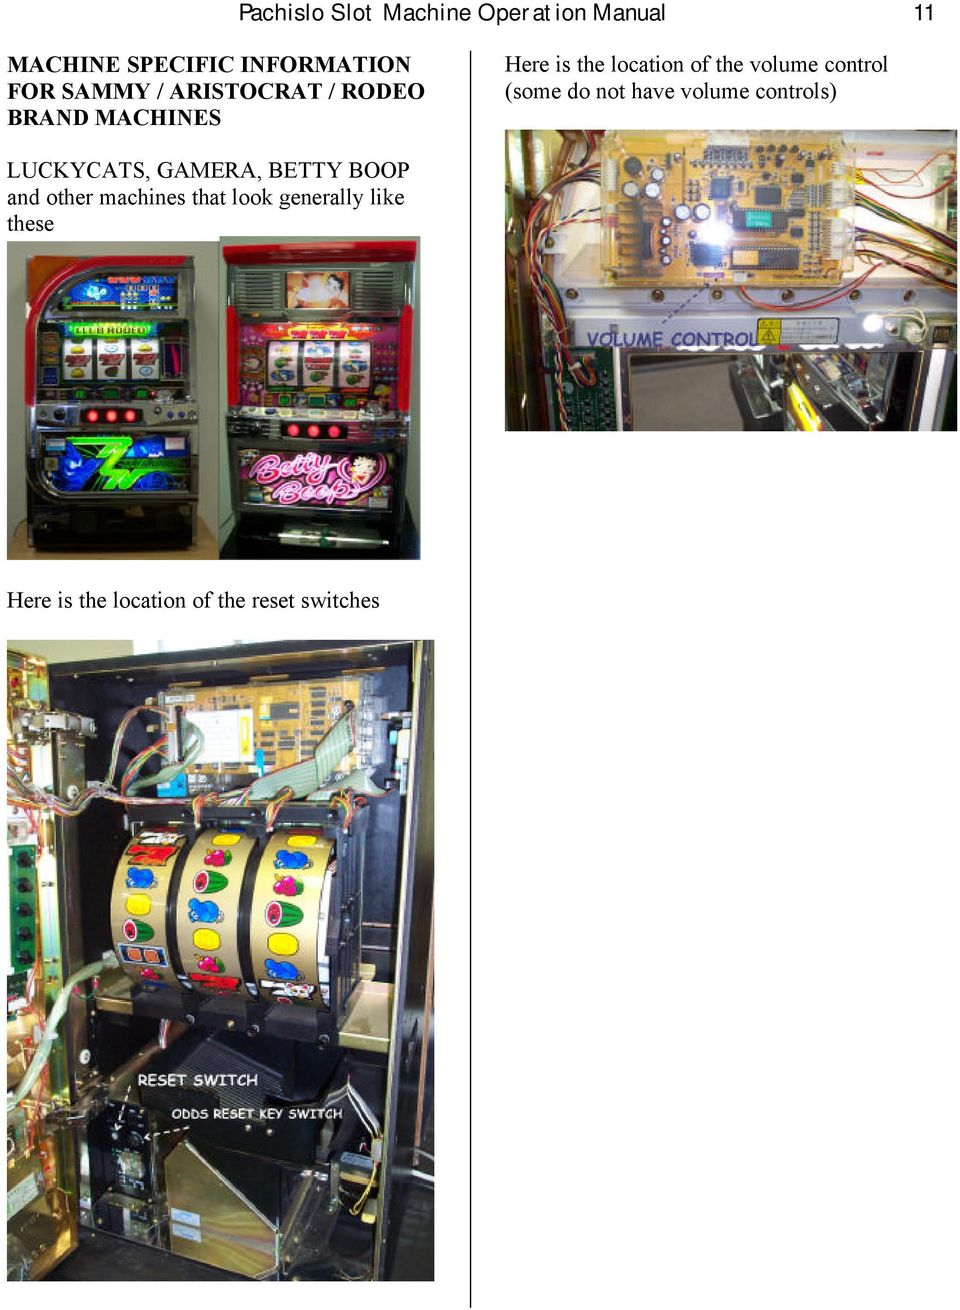 Wiring Diagram For Qlympia Slot Machine Free Download Reset Switch Pachislo Operation Manual 1 Step Opening The Main